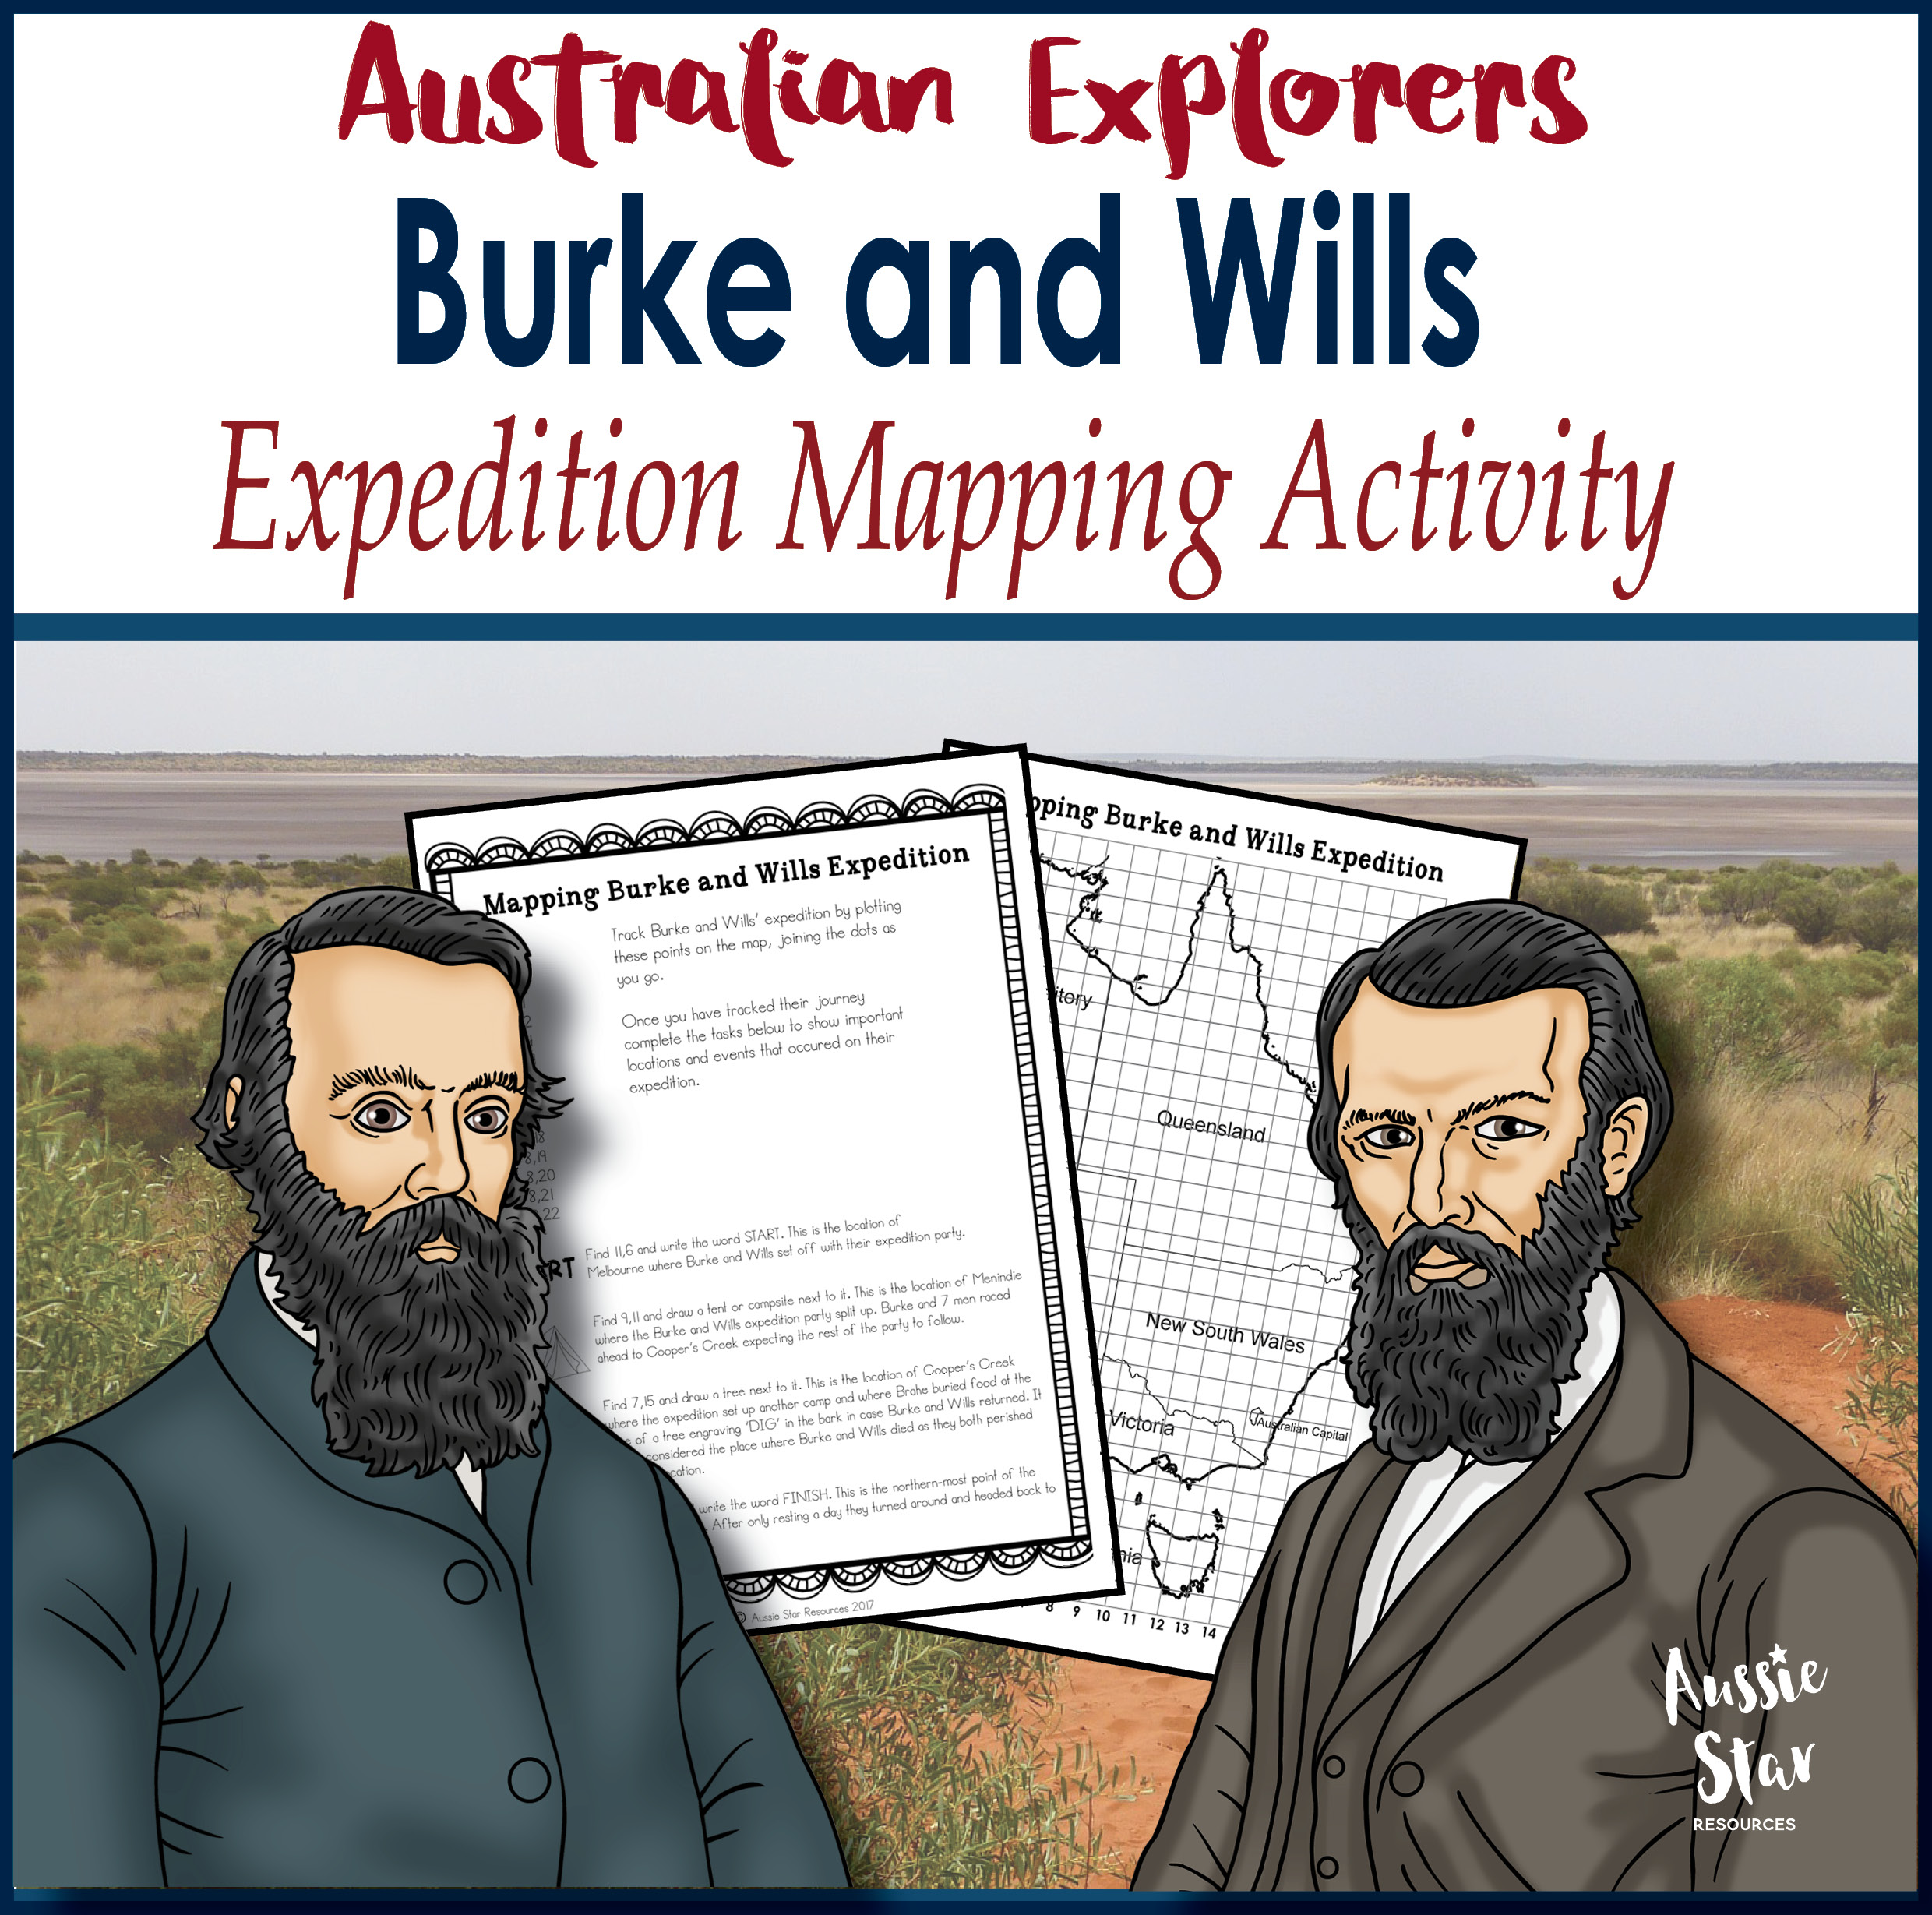 Burke and Wills expedition mapping activity cover